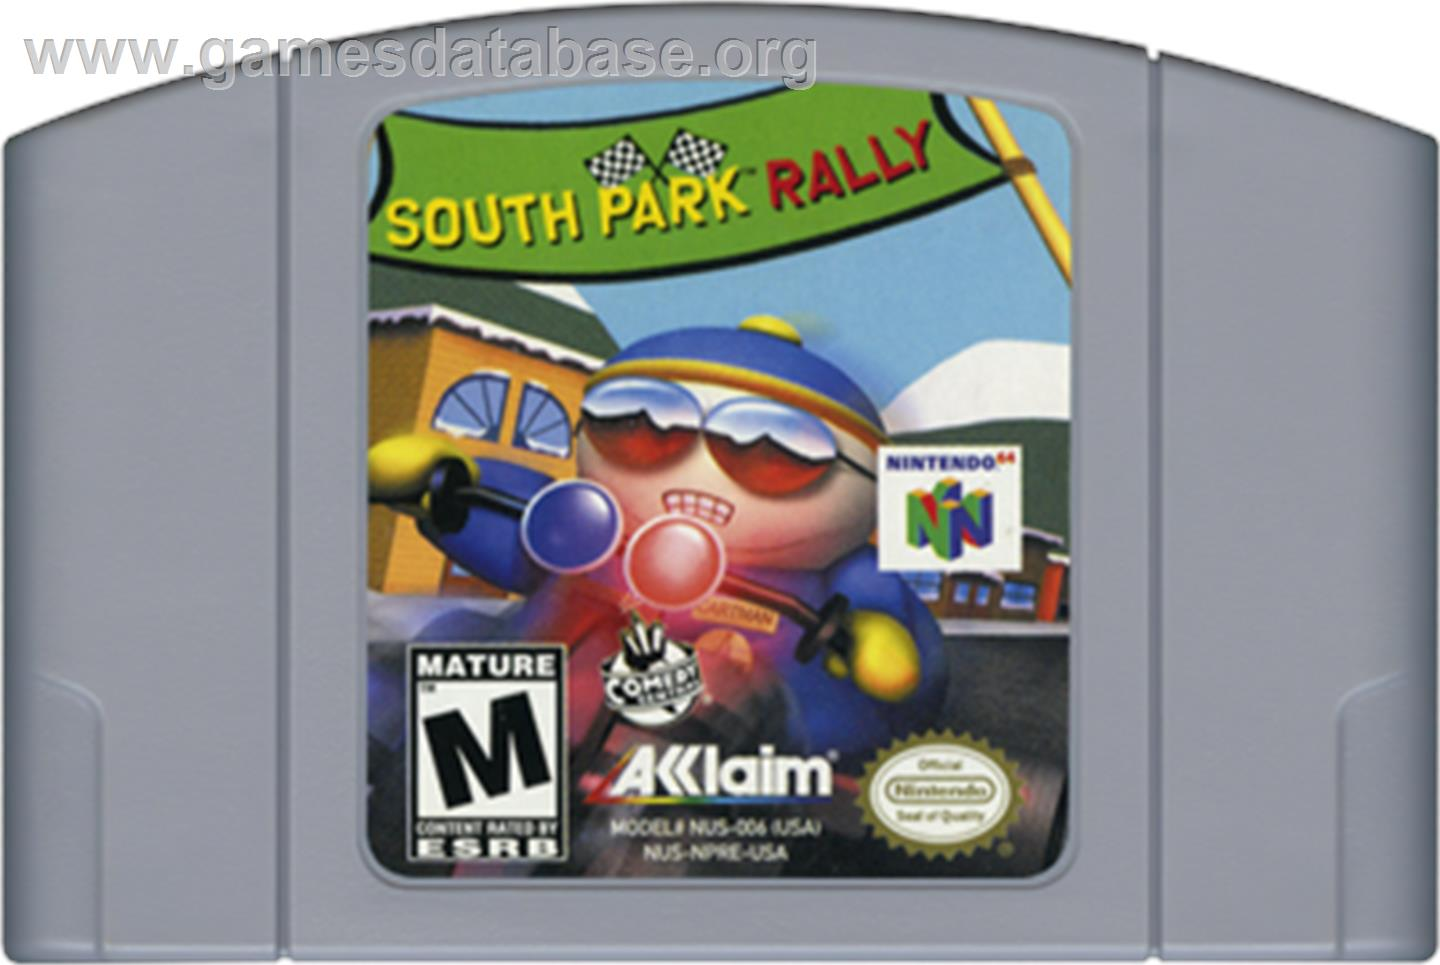 Cartridge artwork for South Park Rally on the Nintendo N64.